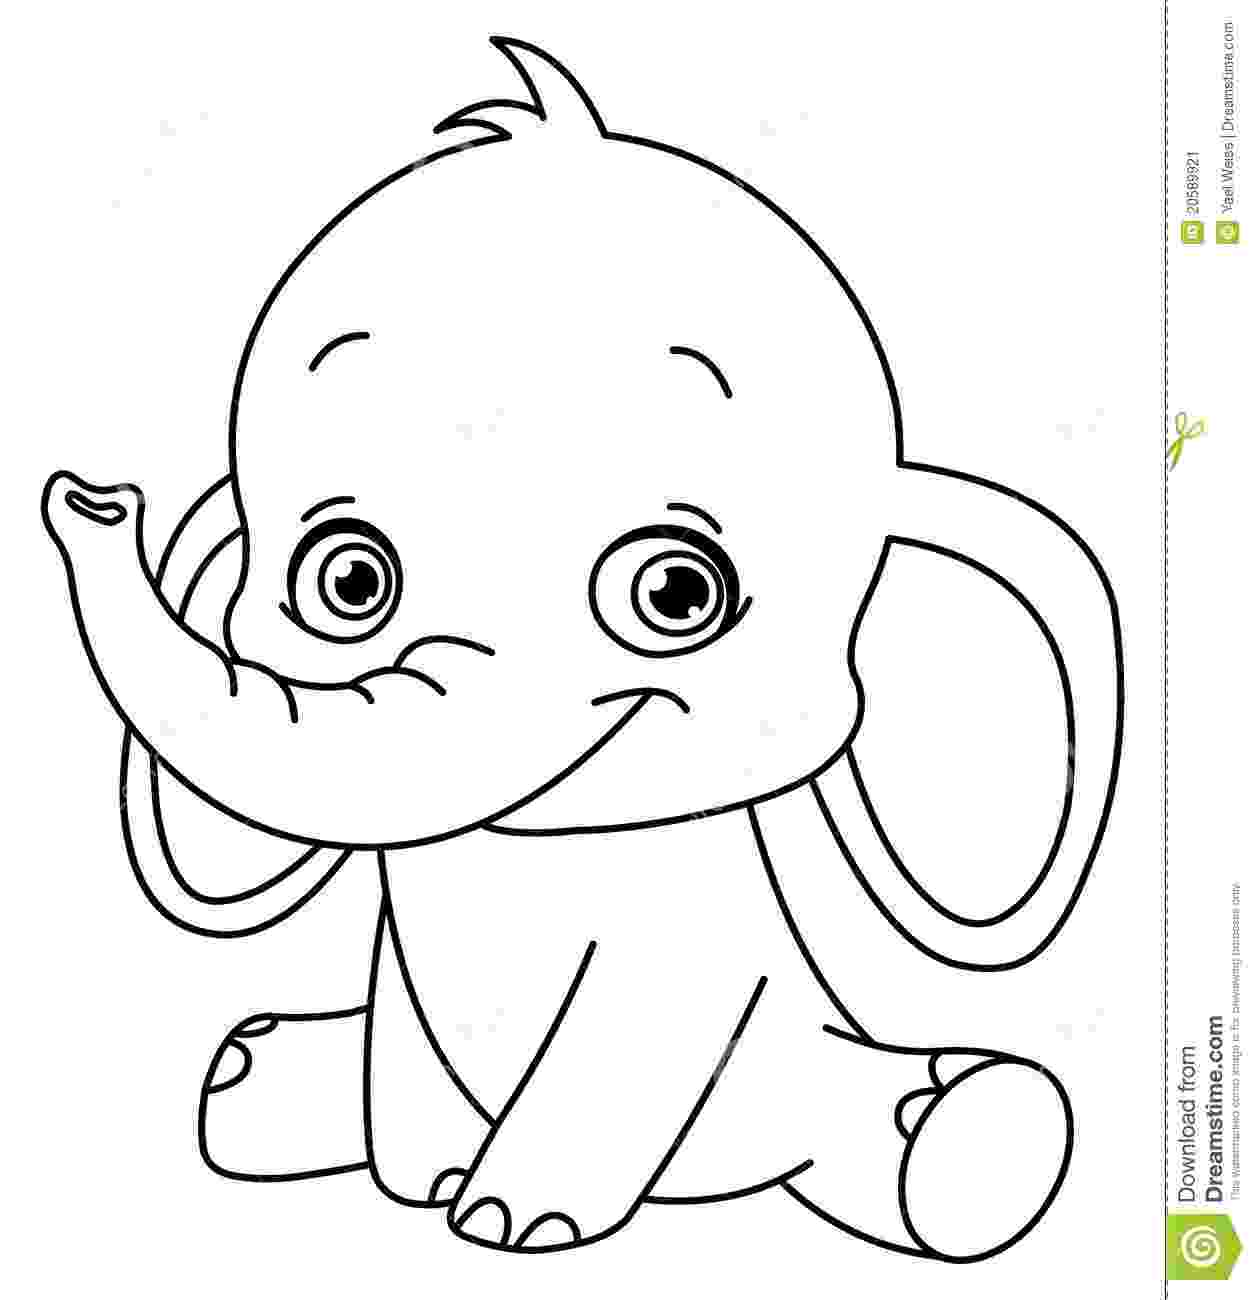 elephant pictures to color free animals elephant printable colouring for preschool elephant to color pictures